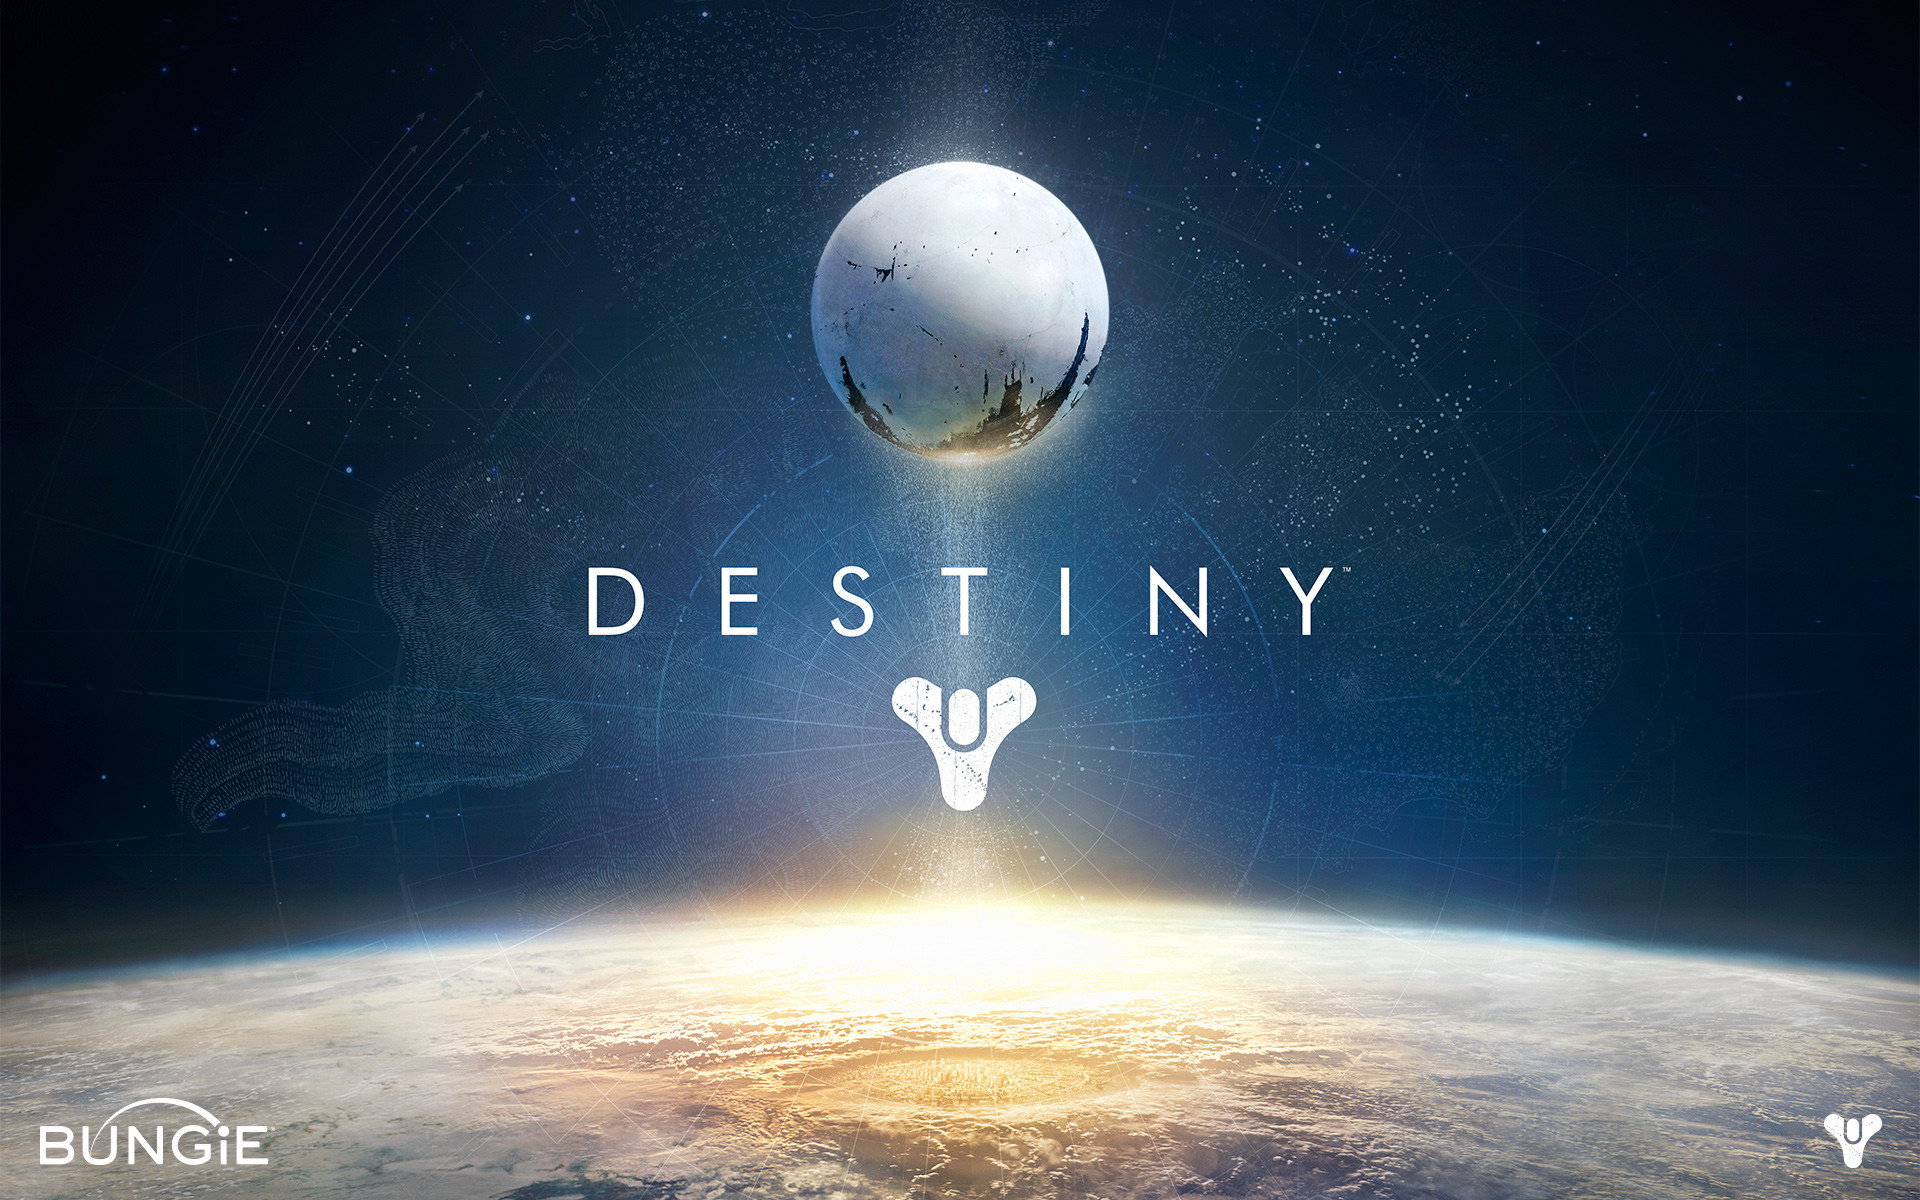 Destiny Sells More on Xbox One vs PS4